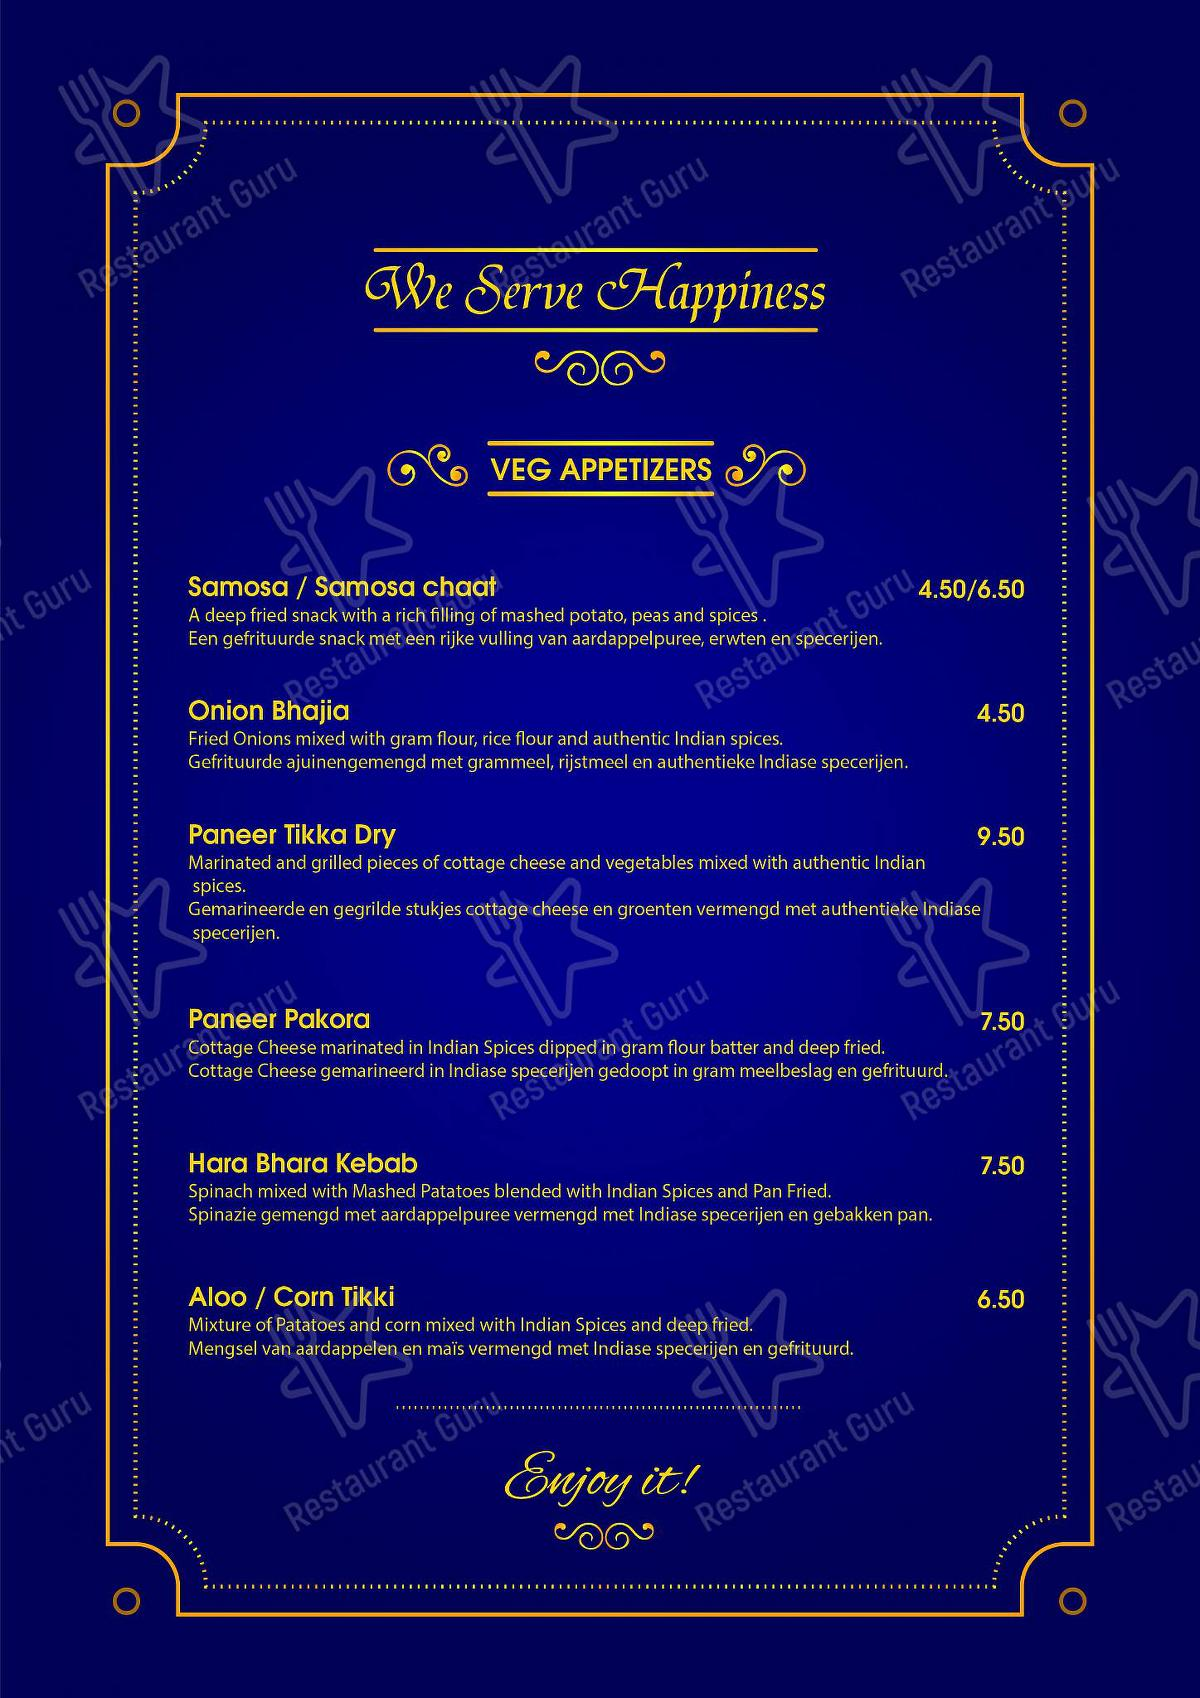 What's UP India menu - meals and drinks